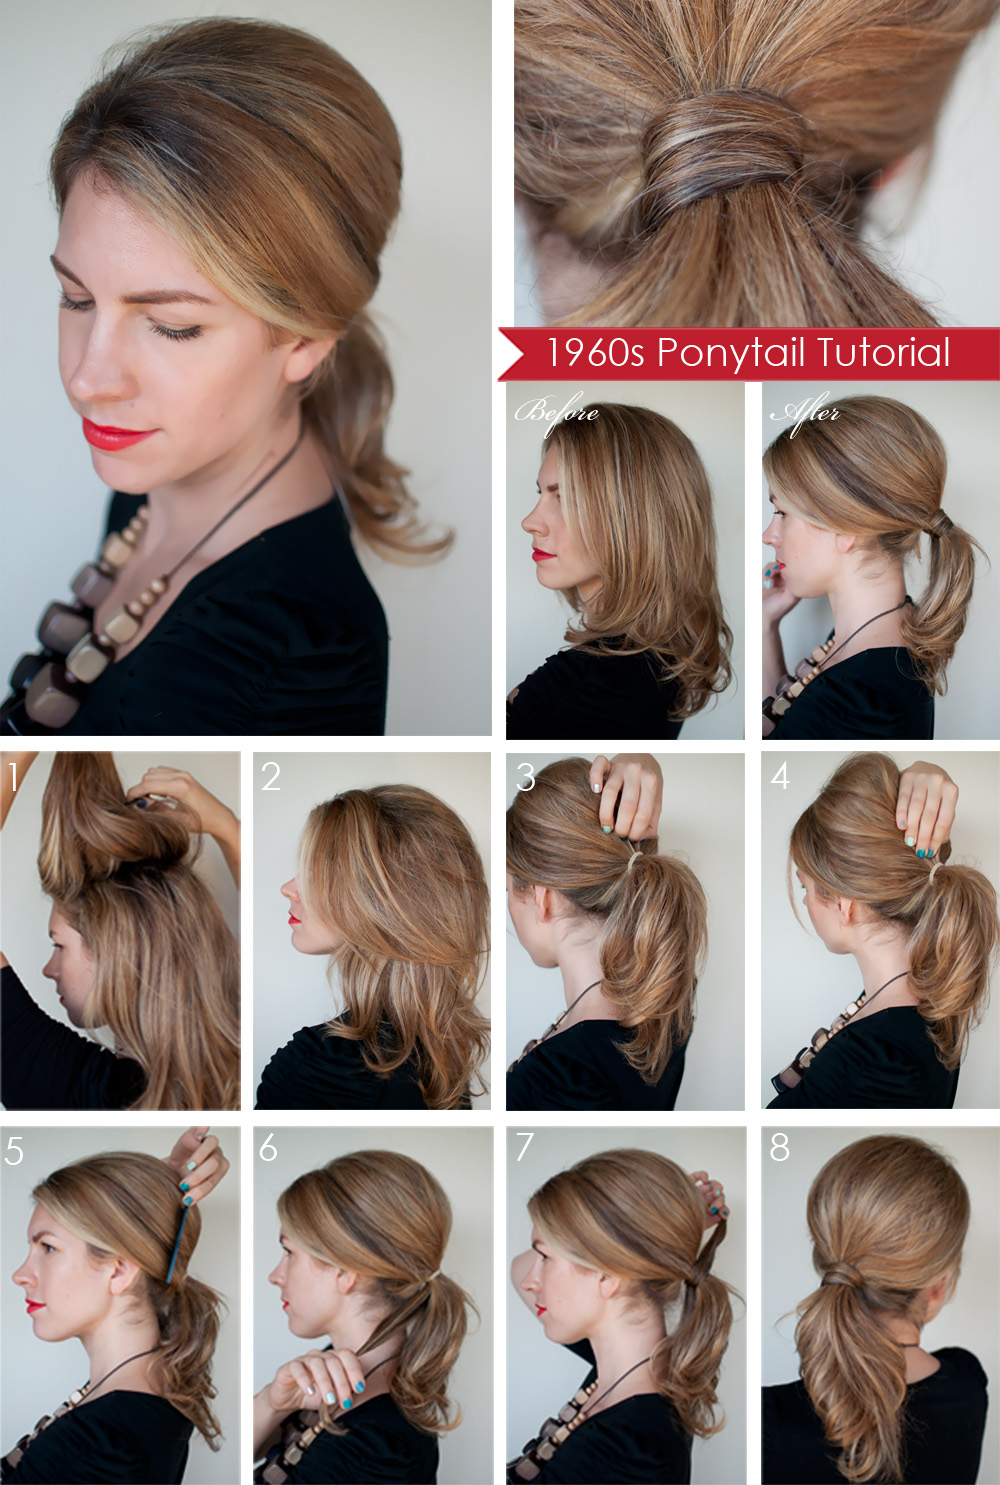 Vanity At It's Best! : Easy Hair Style Tutorials